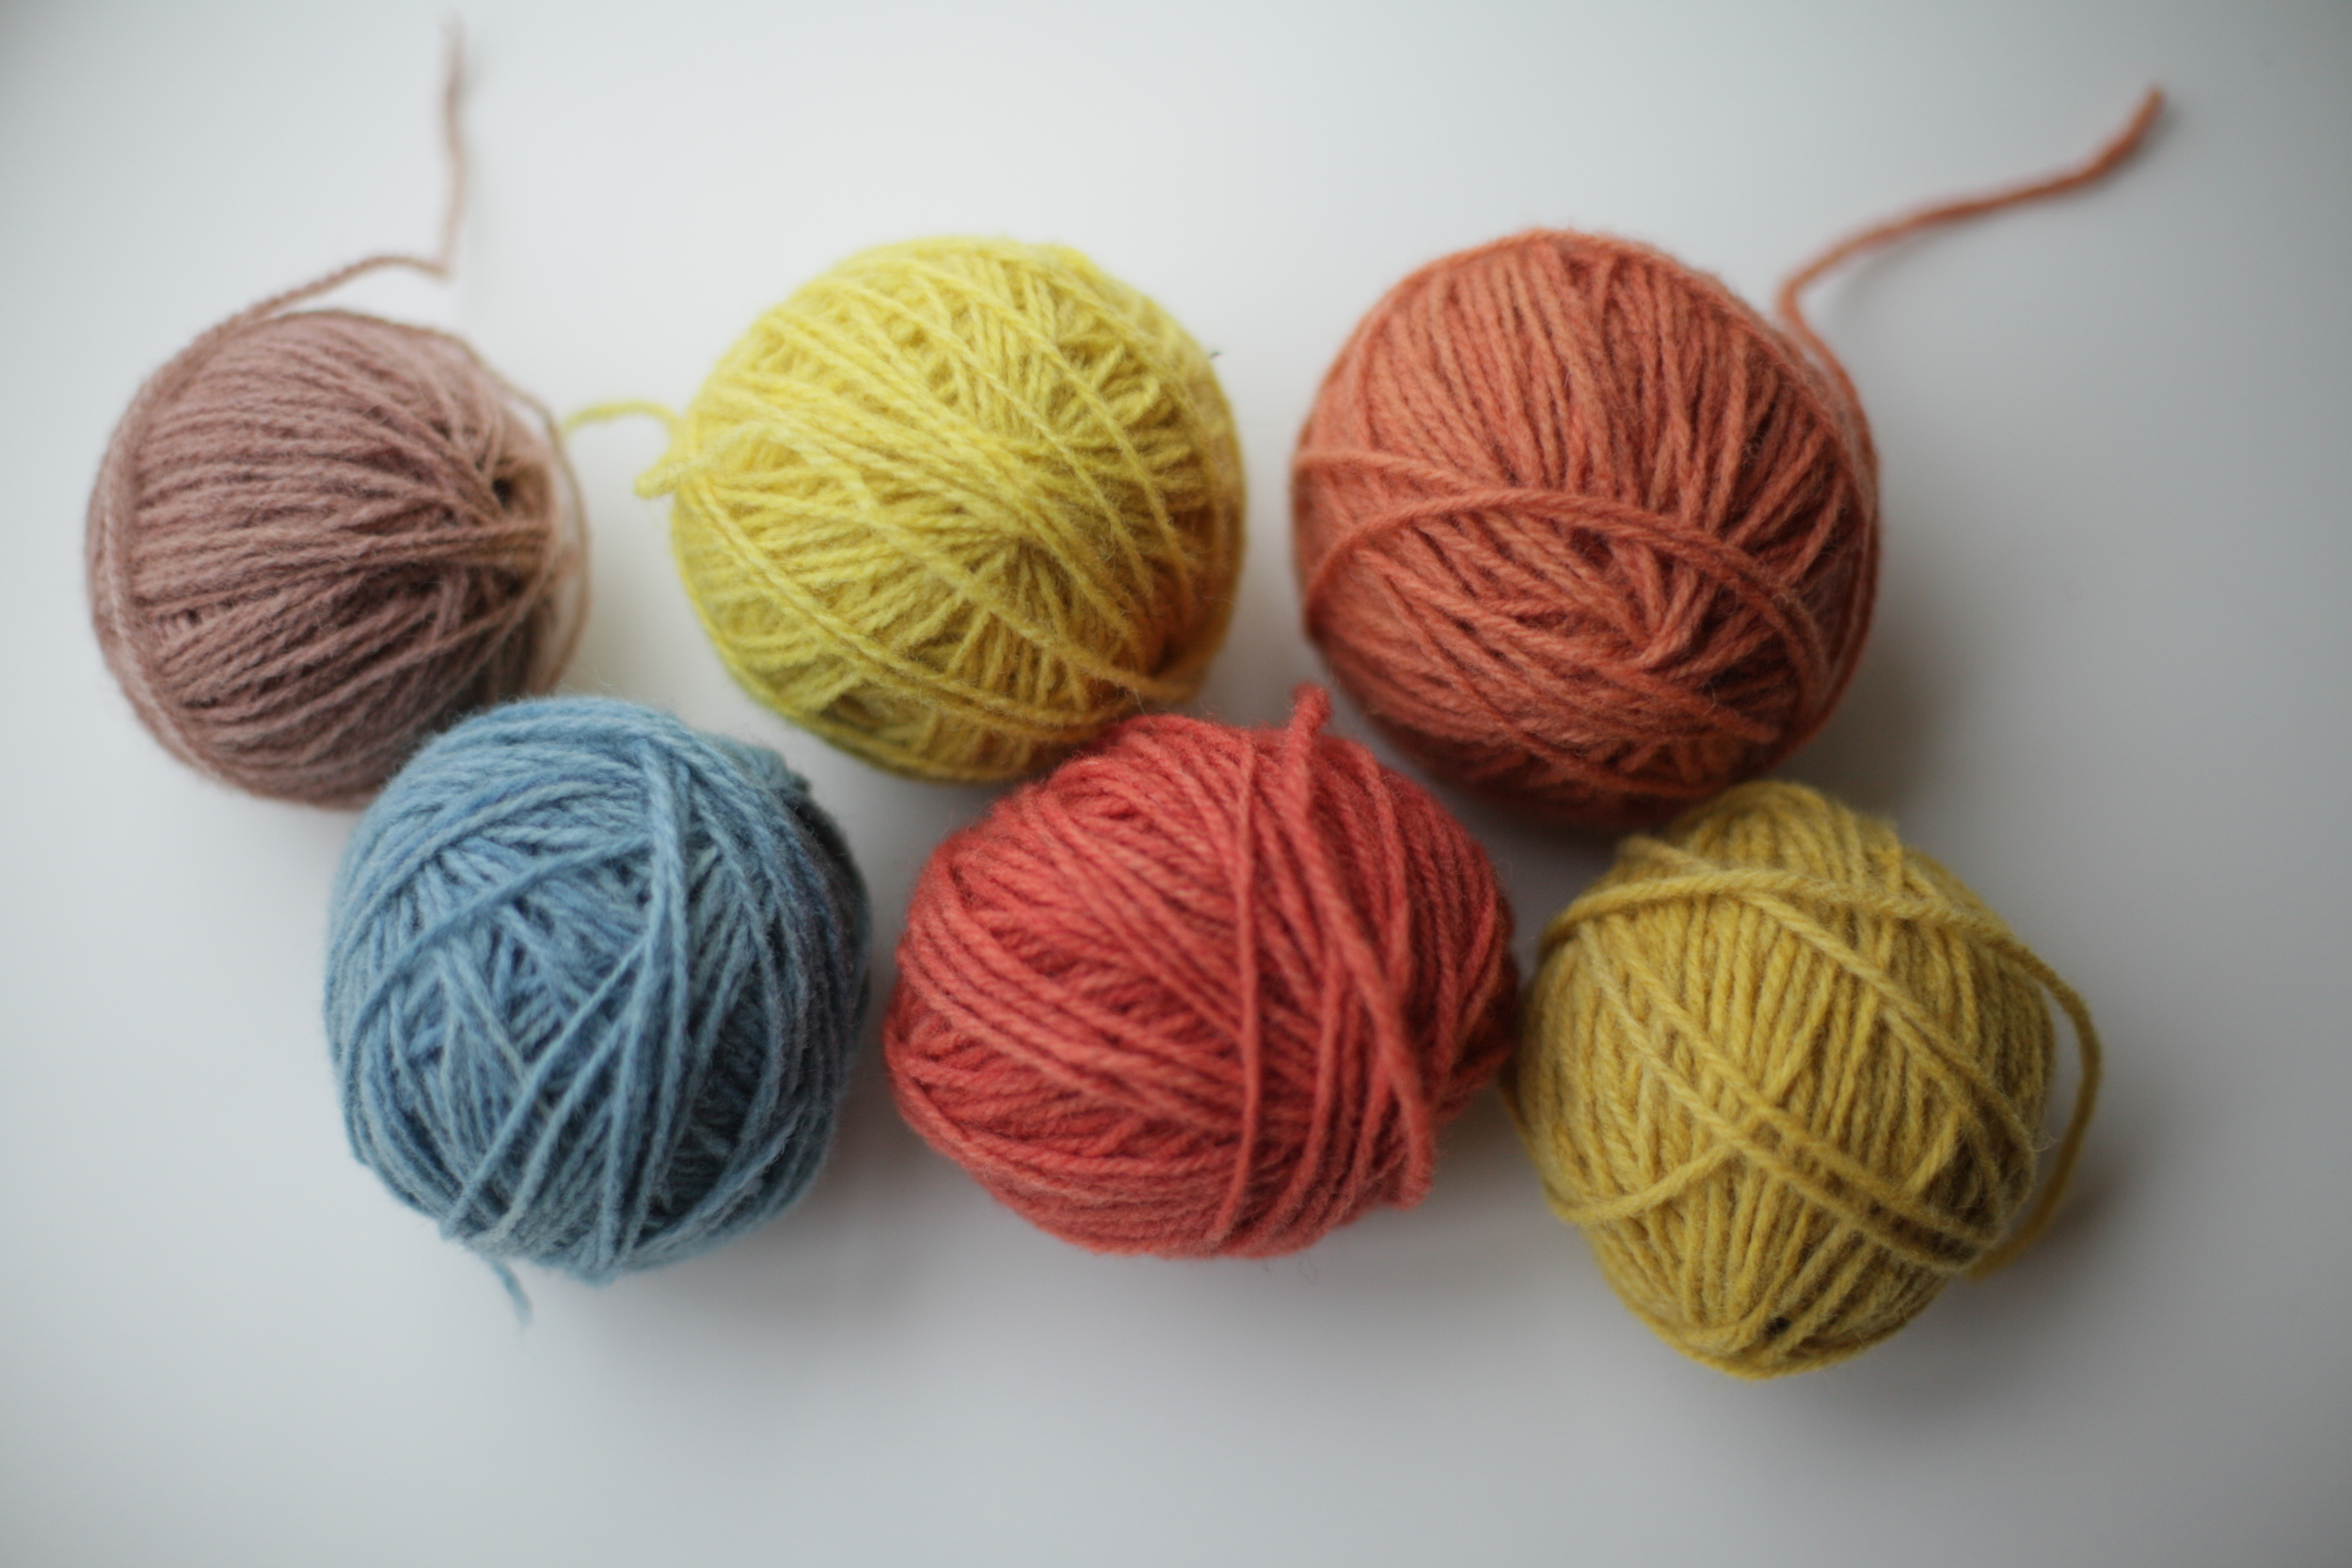 Dyed with Goat Willow, Woad, Dyers Camomile, Madder, Madder again and more Dyers Camomile.